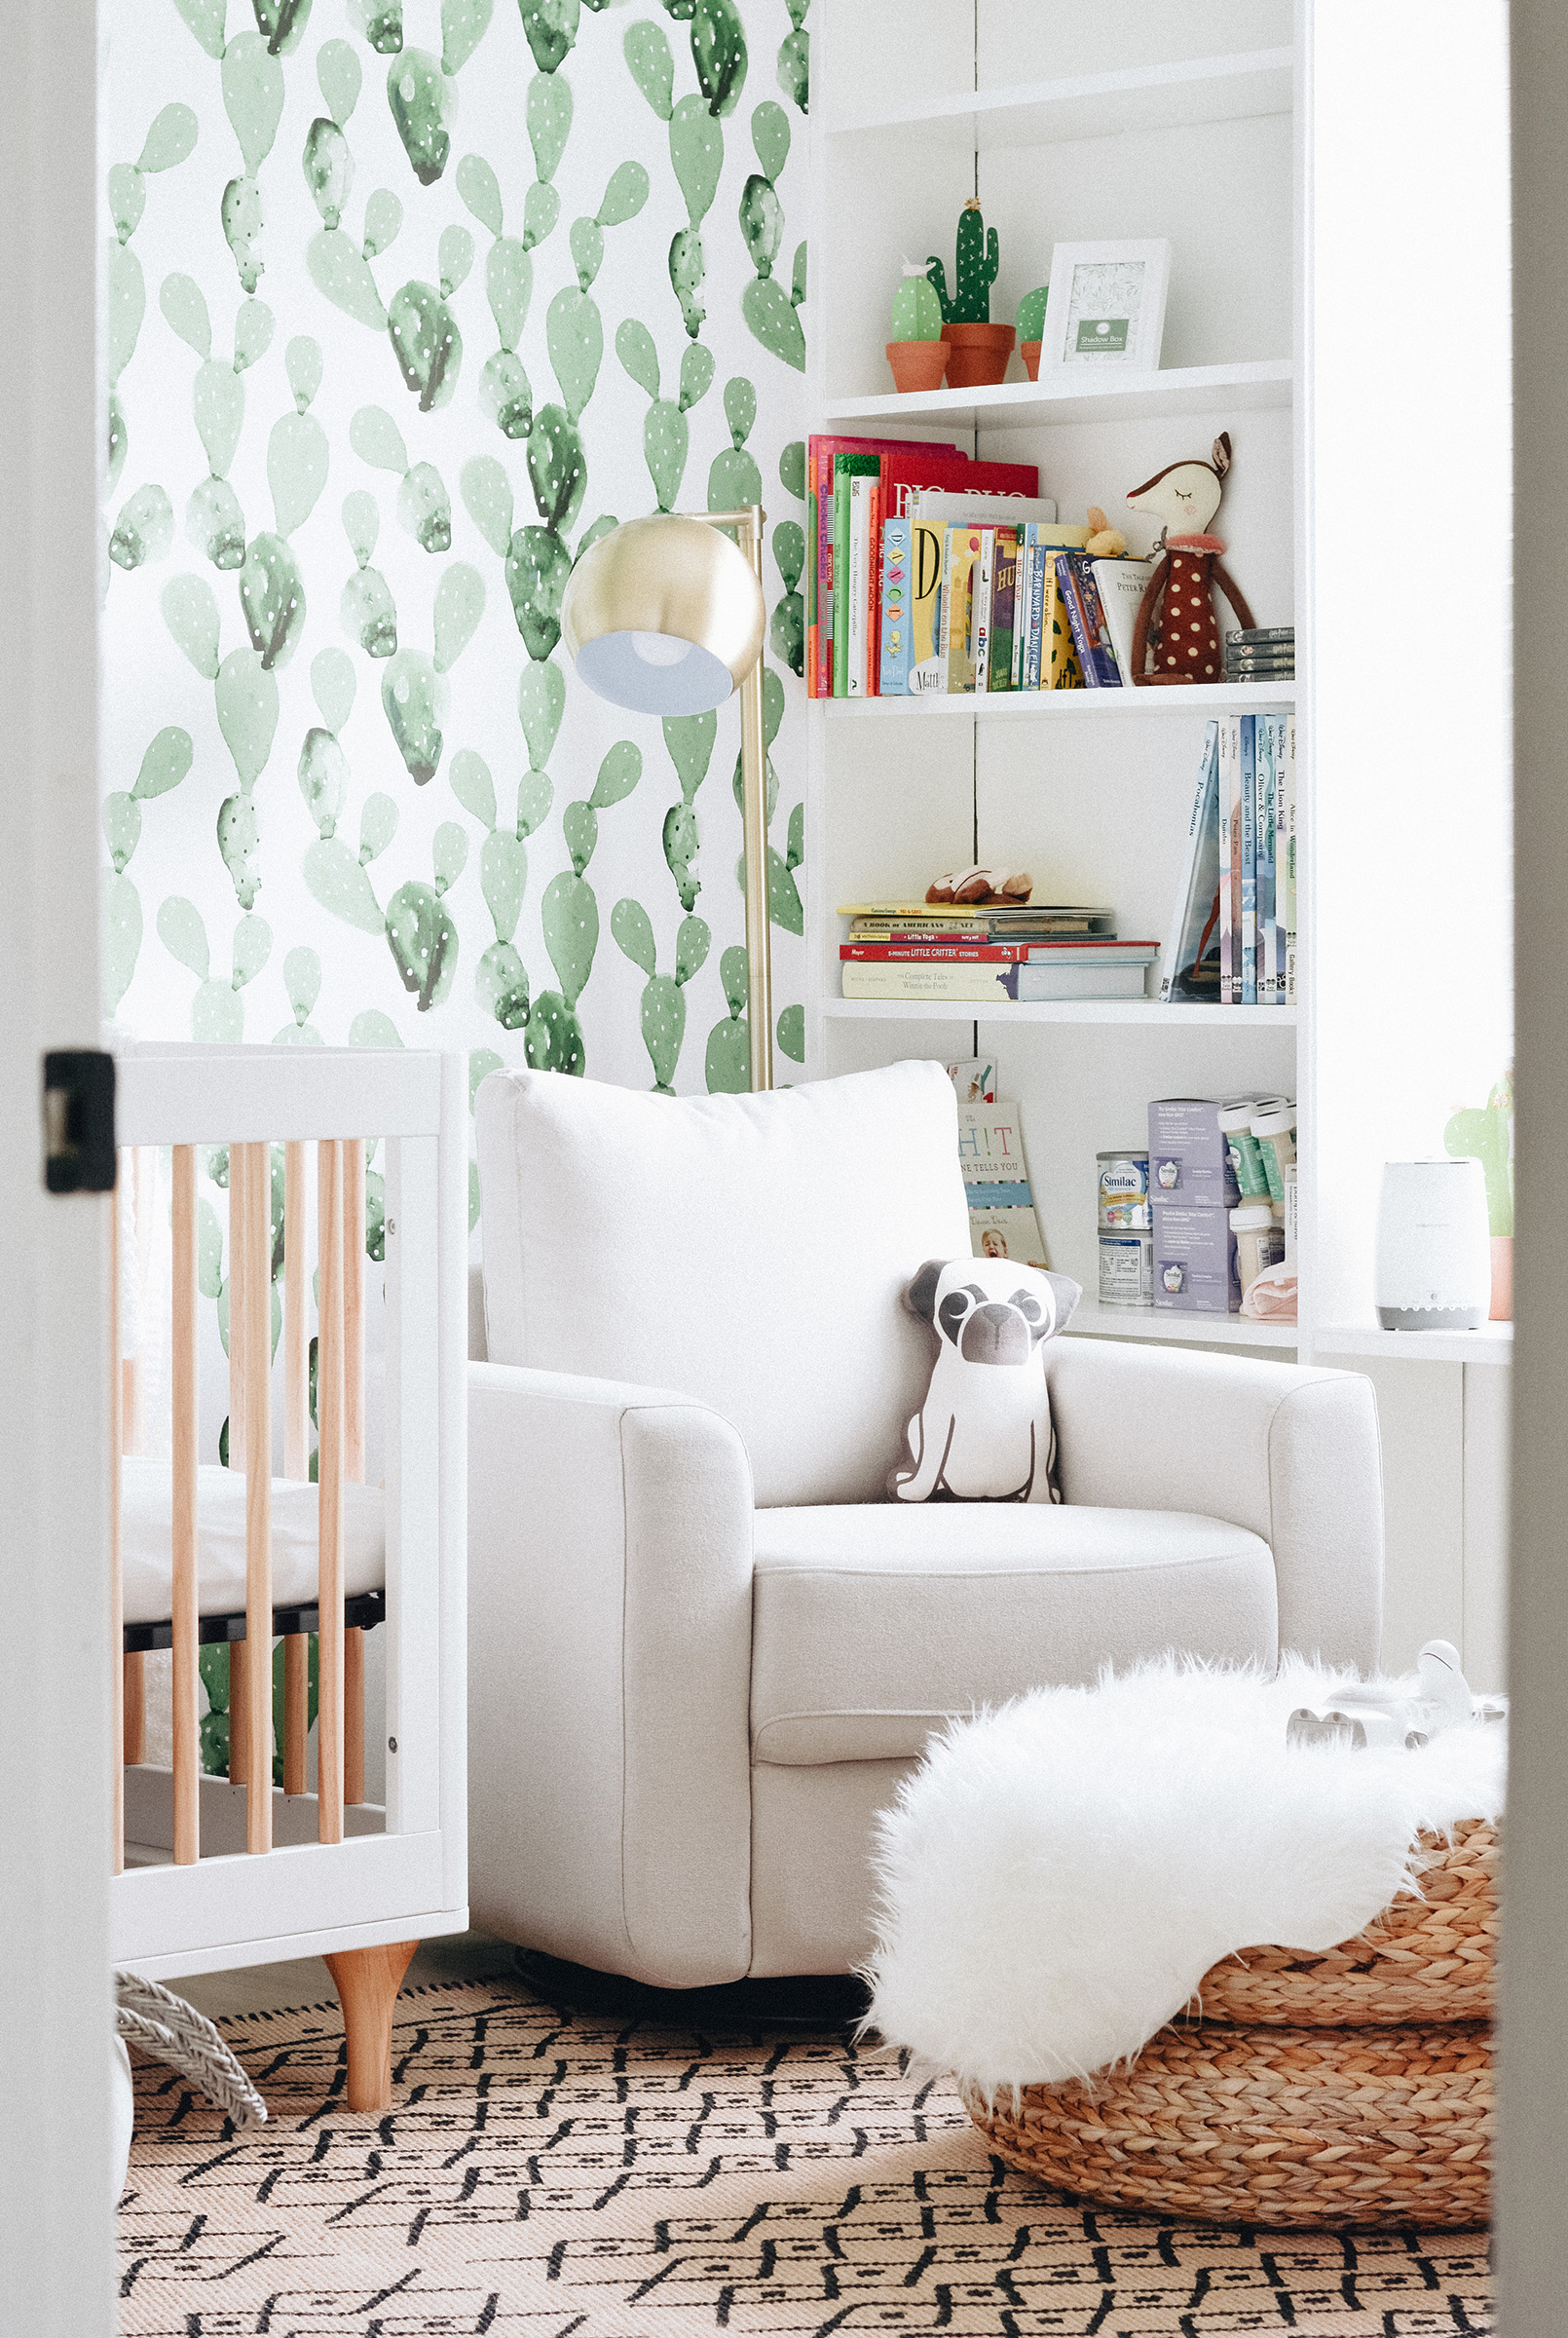 Eclectic and Whimsical Nursery with Cacti Wallpaper - Project Nursery